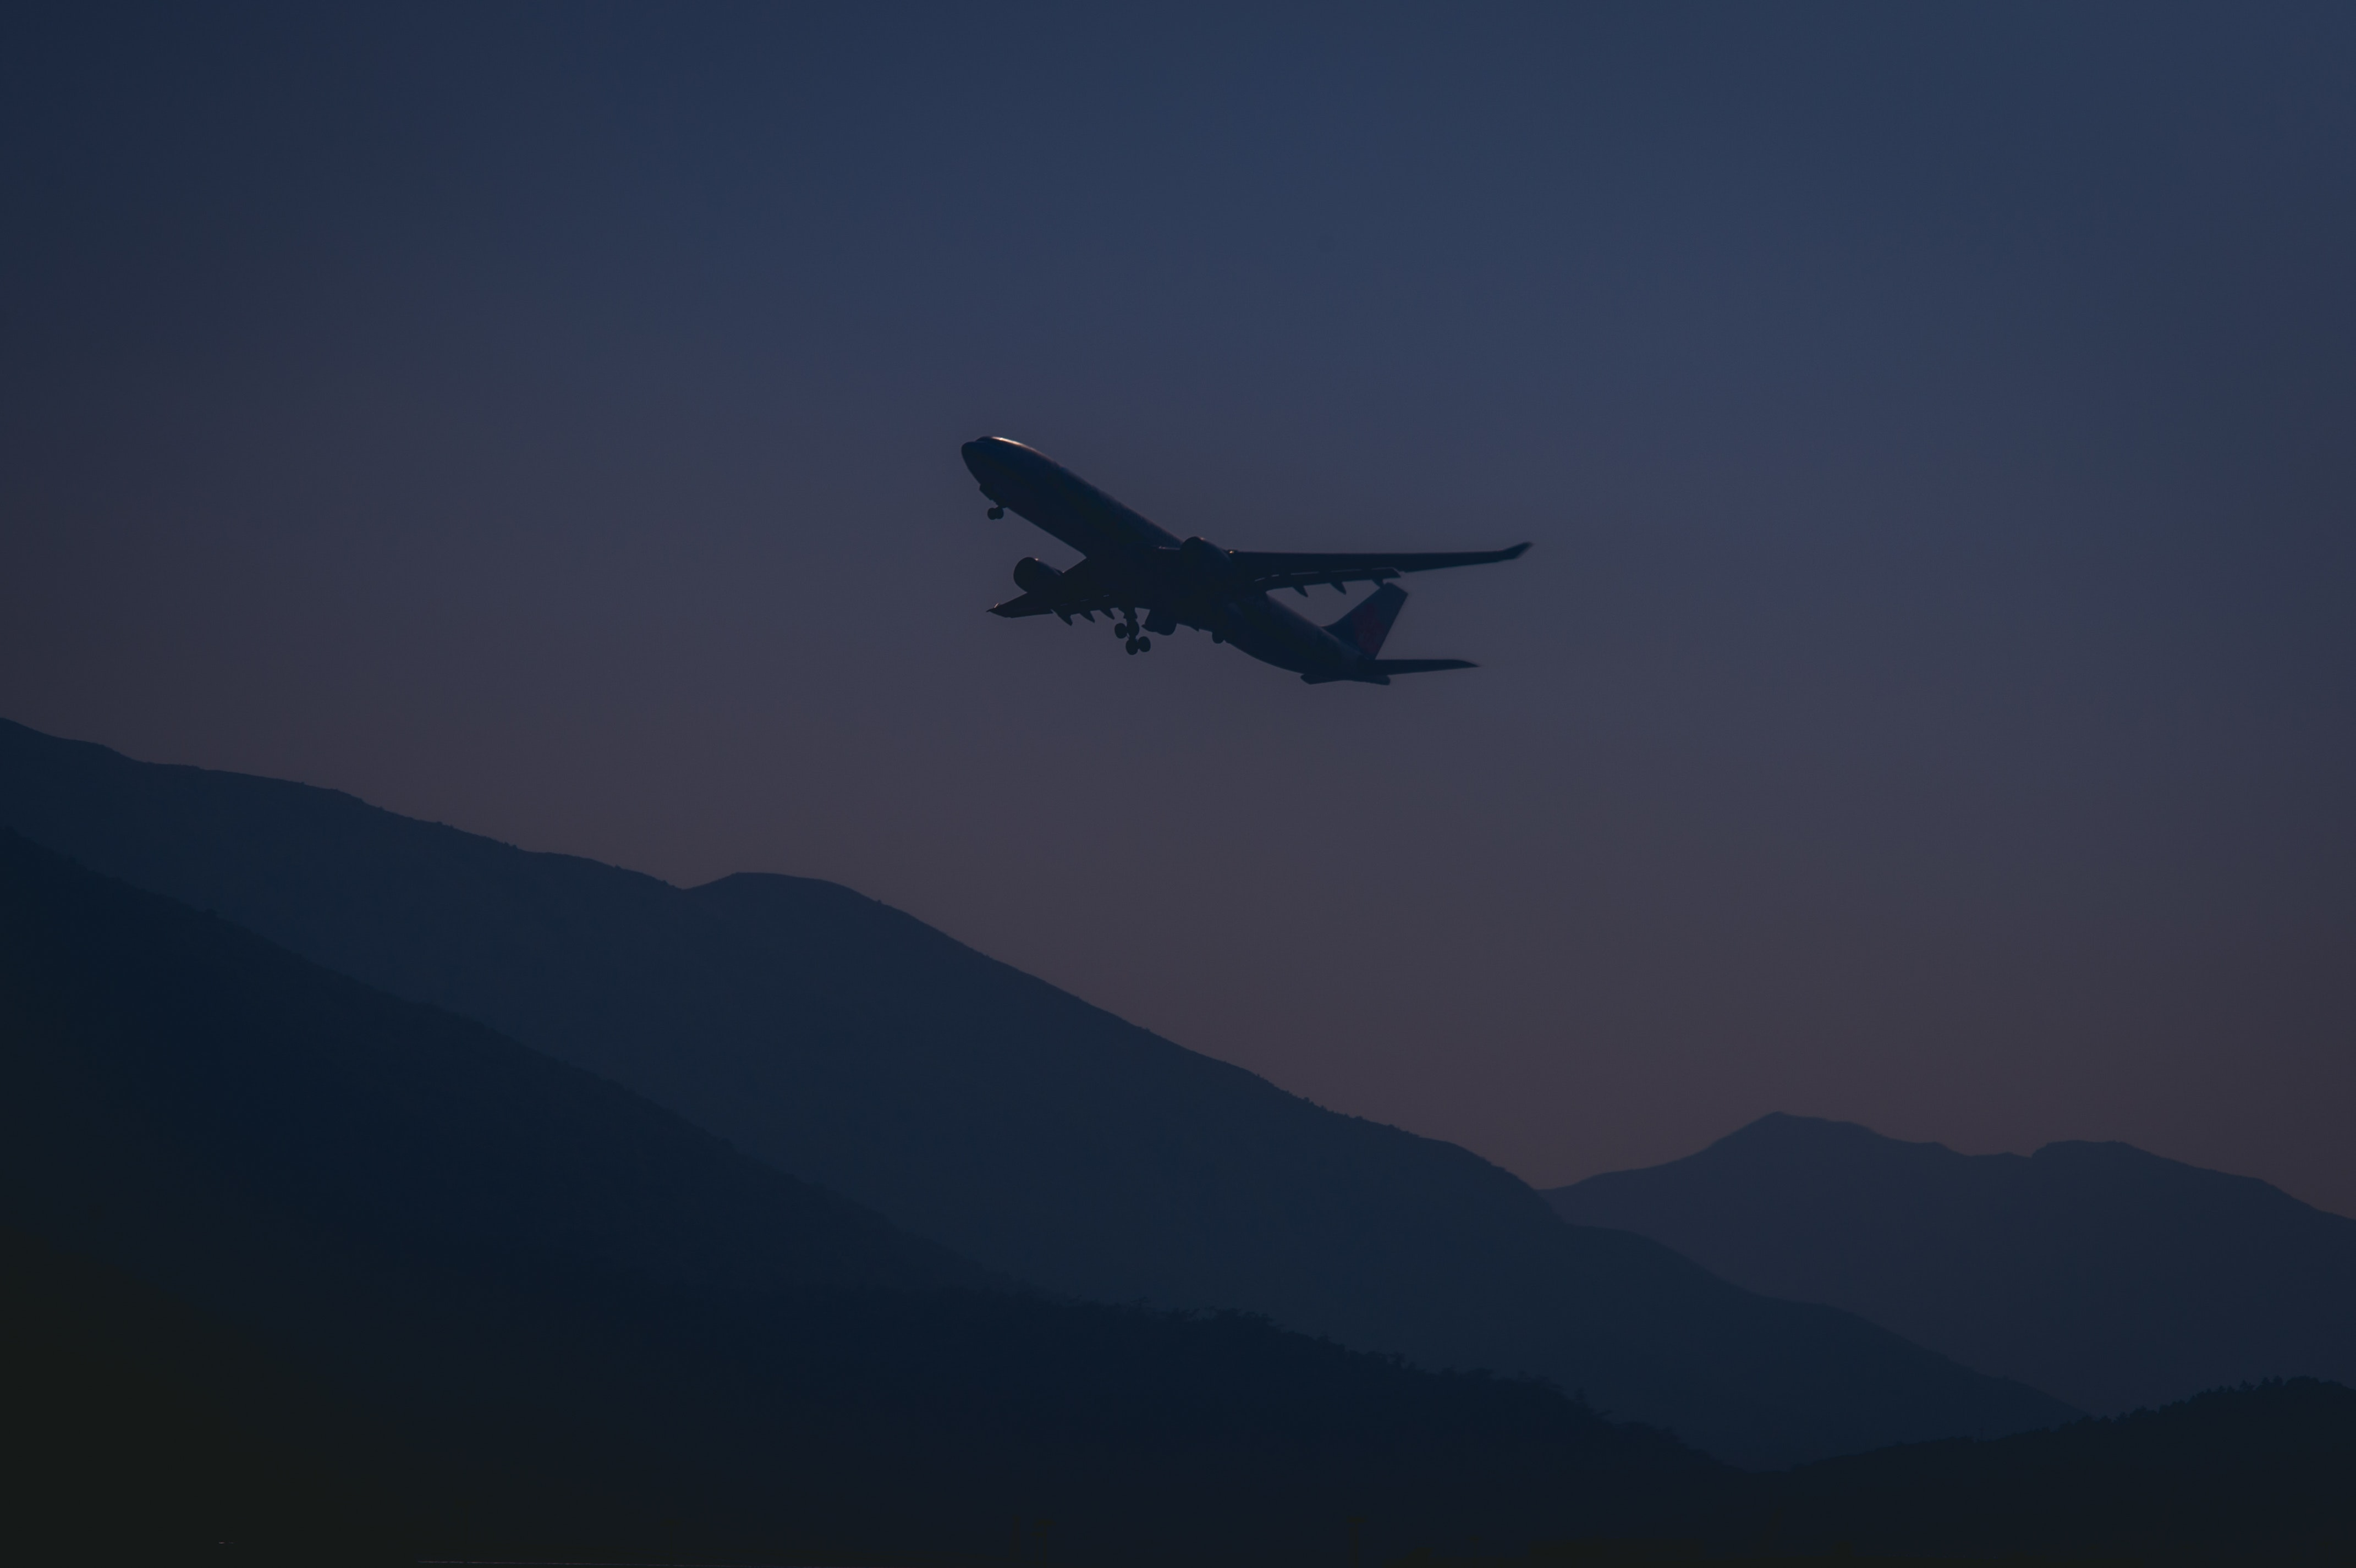 Silhouette of airplane during evening photo